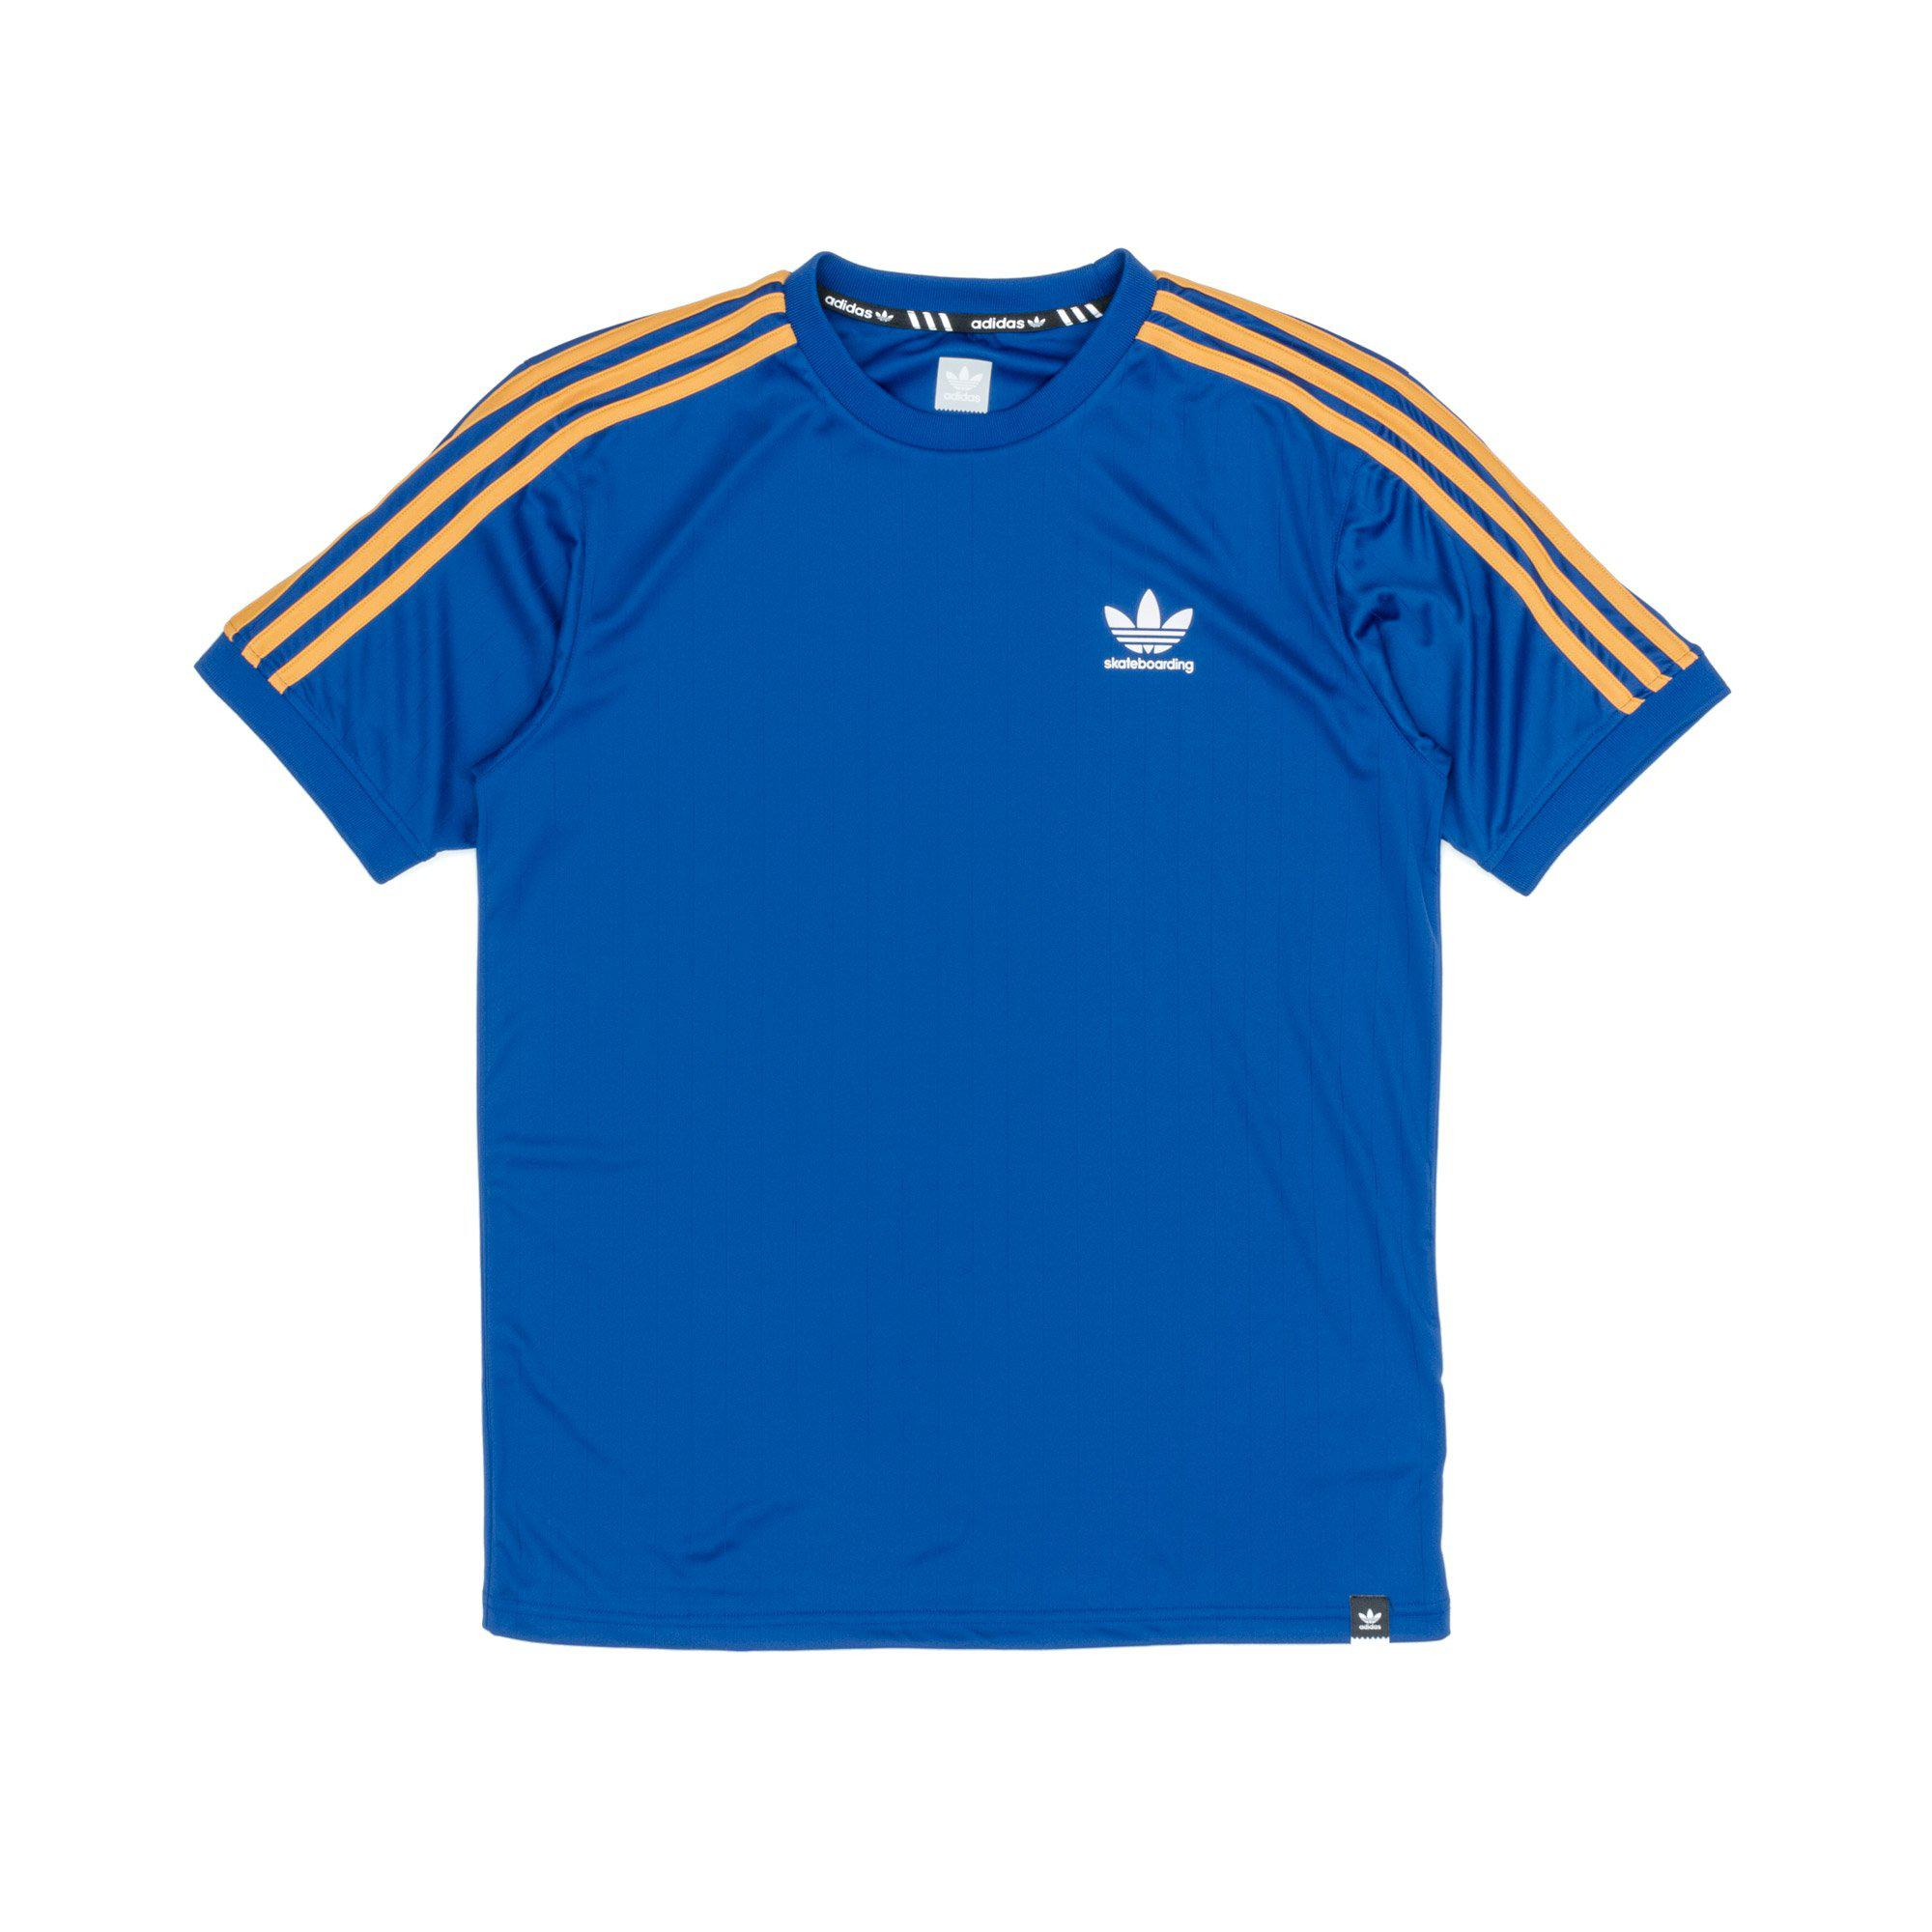 872f1574 adidas Clima Club Jersey T-shirt in Blue for Men - Lyst